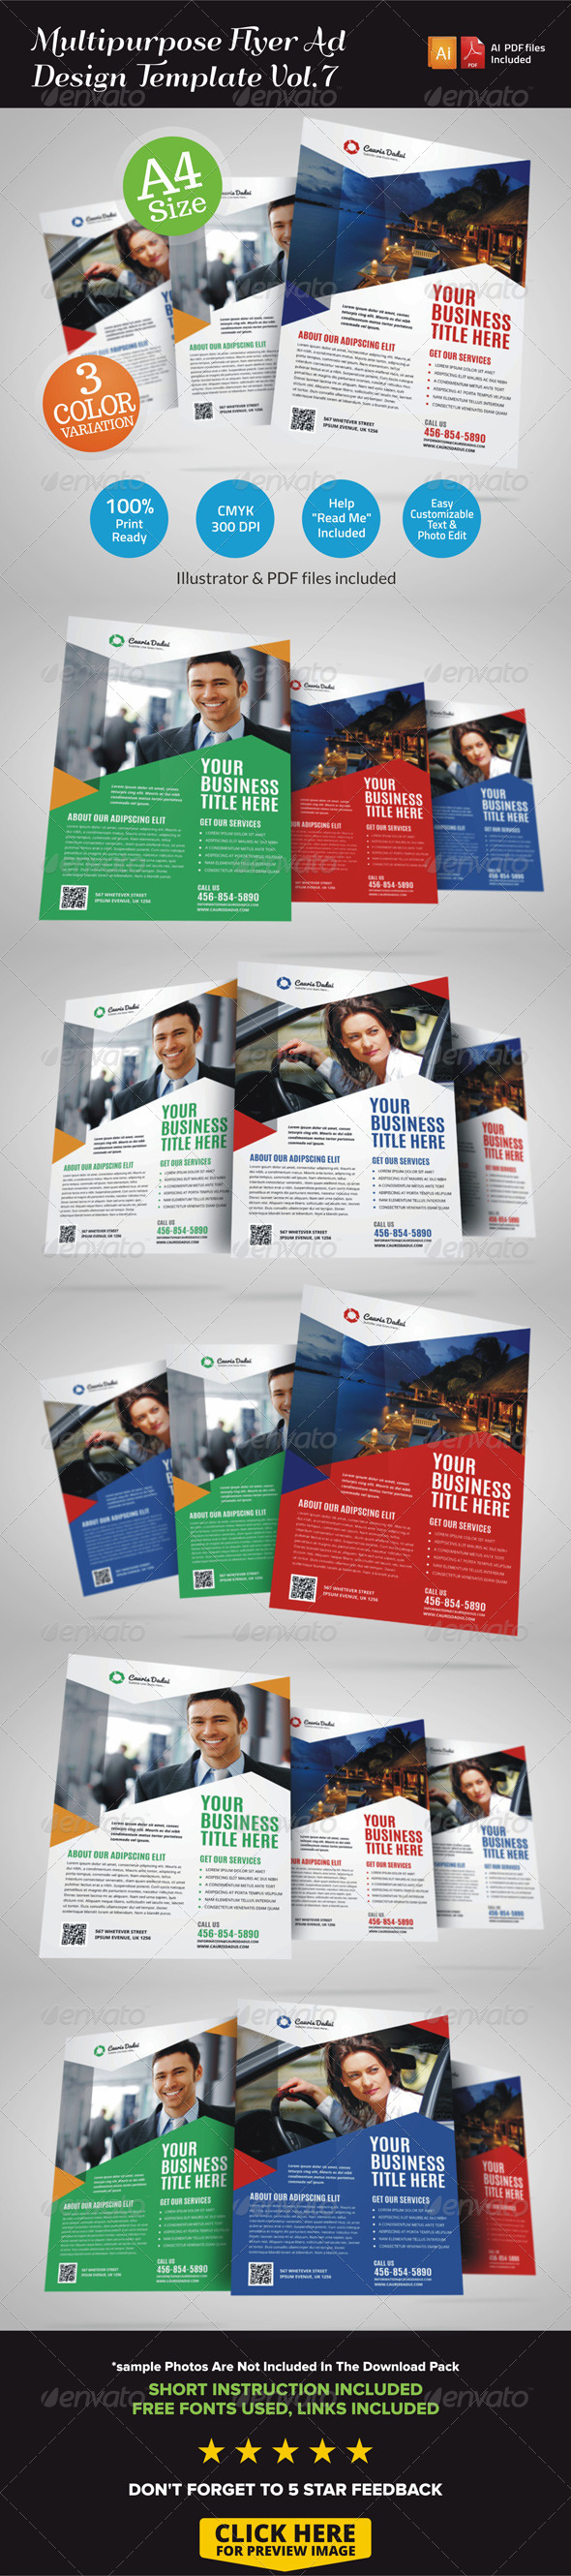 GraphicRiver Multipurpose Business Flyer Template Vol.7 7127081